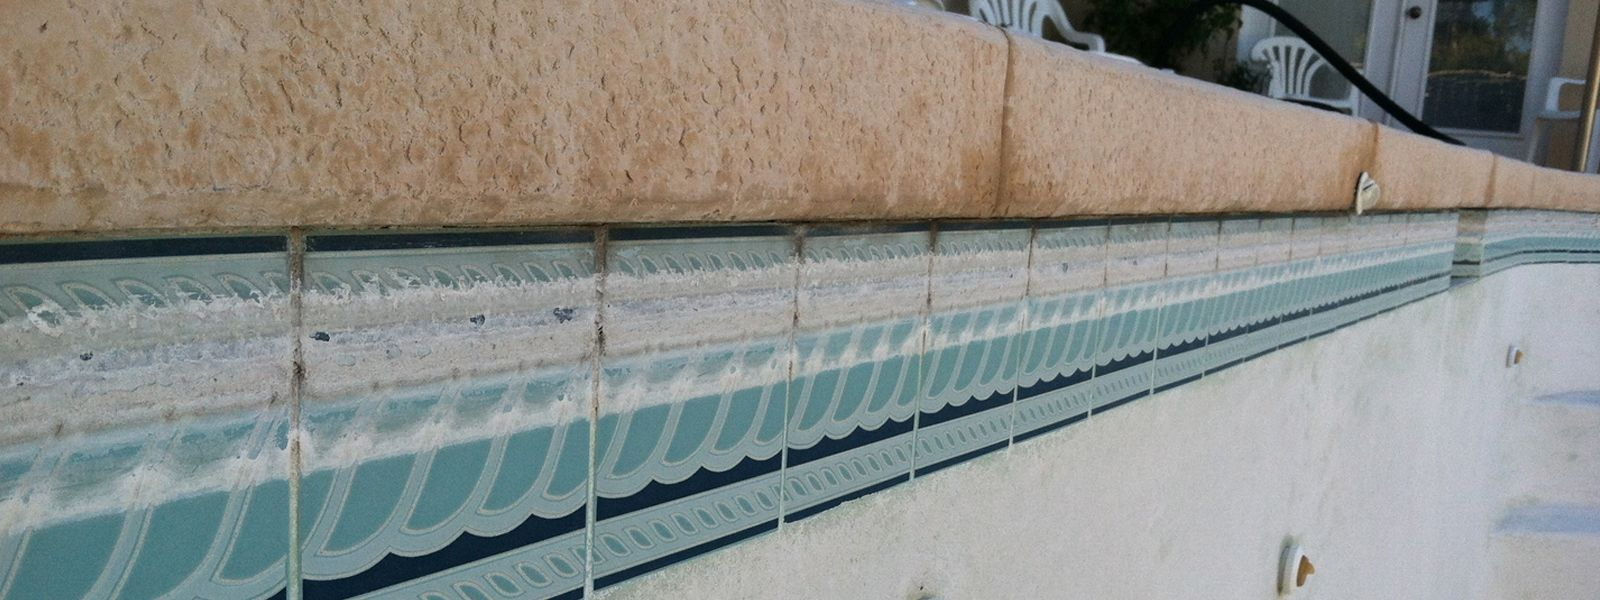 Pin by Pooltilecleaning on Pool Tile Repair | Swimming pool ...